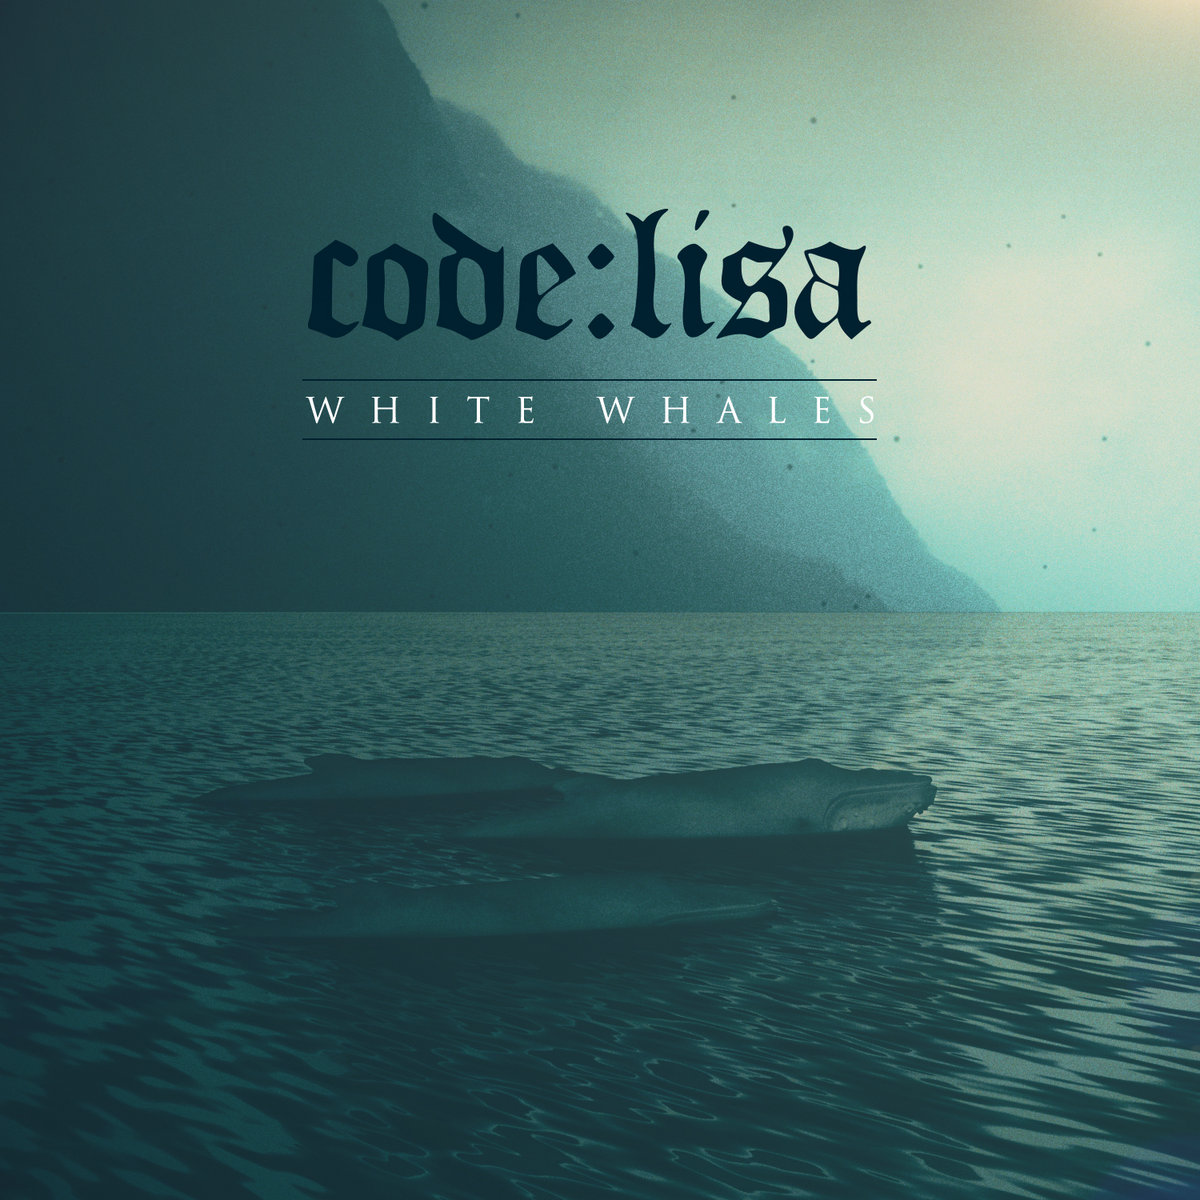 Code:Lisa - White Whales [EP] (2019)